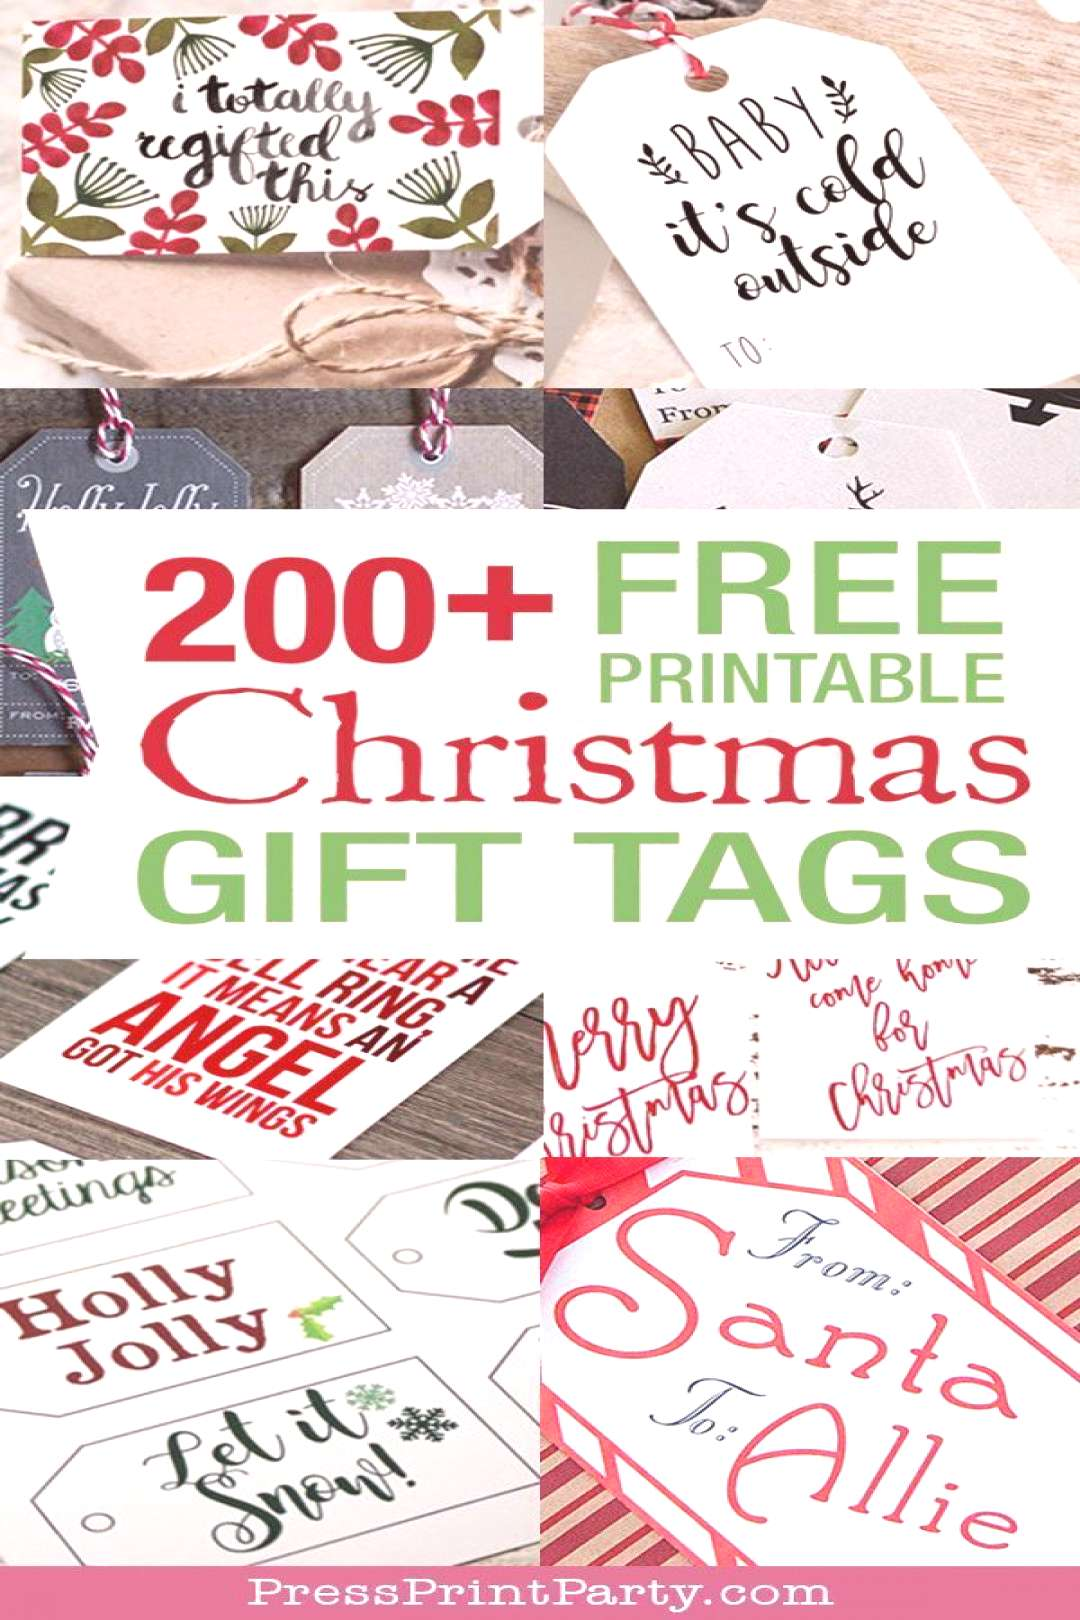 200+ FREE Christmas Gift Tags Printables. Lots of Rustic and vintage for that homemade look. Great